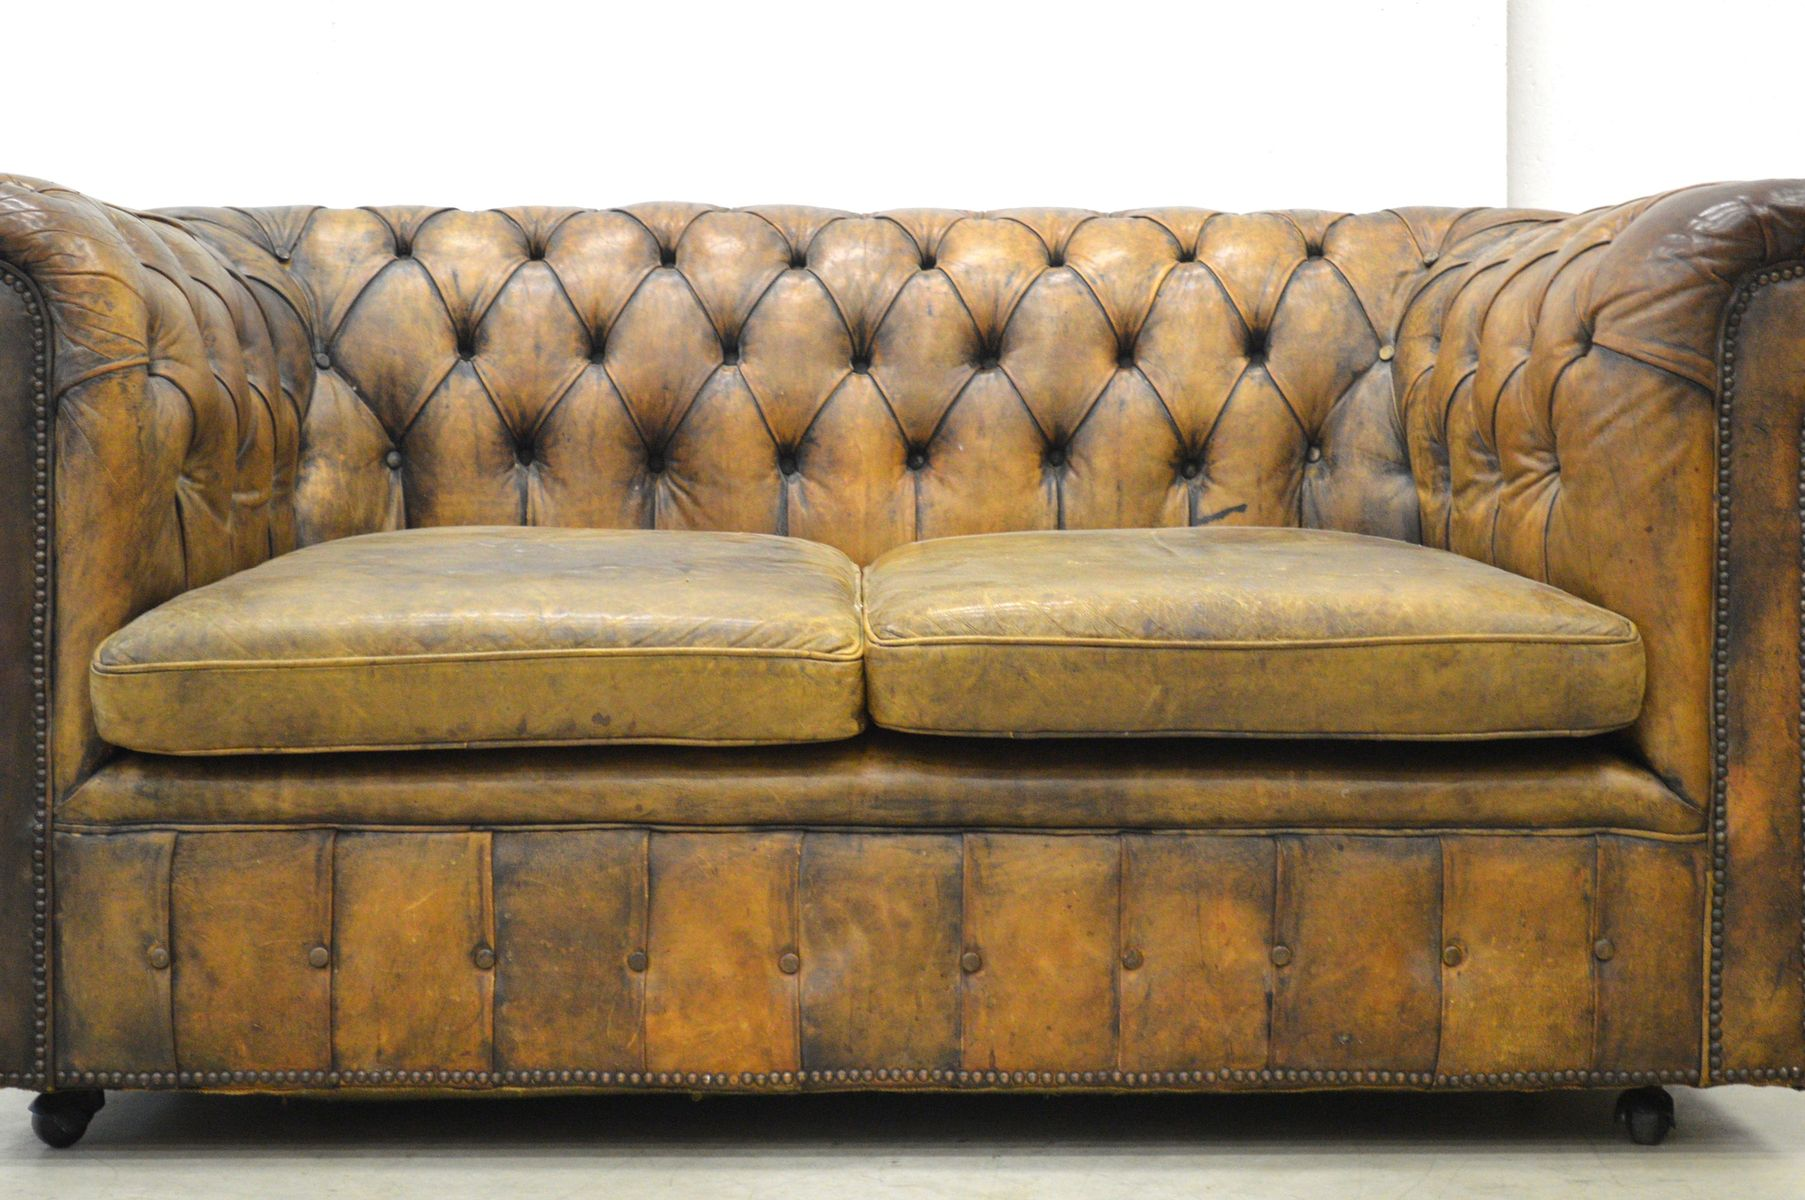 englisches art deco chesterfield 2 sitzer leder sofa in cognacbraun 1930er bei pamono kaufen. Black Bedroom Furniture Sets. Home Design Ideas